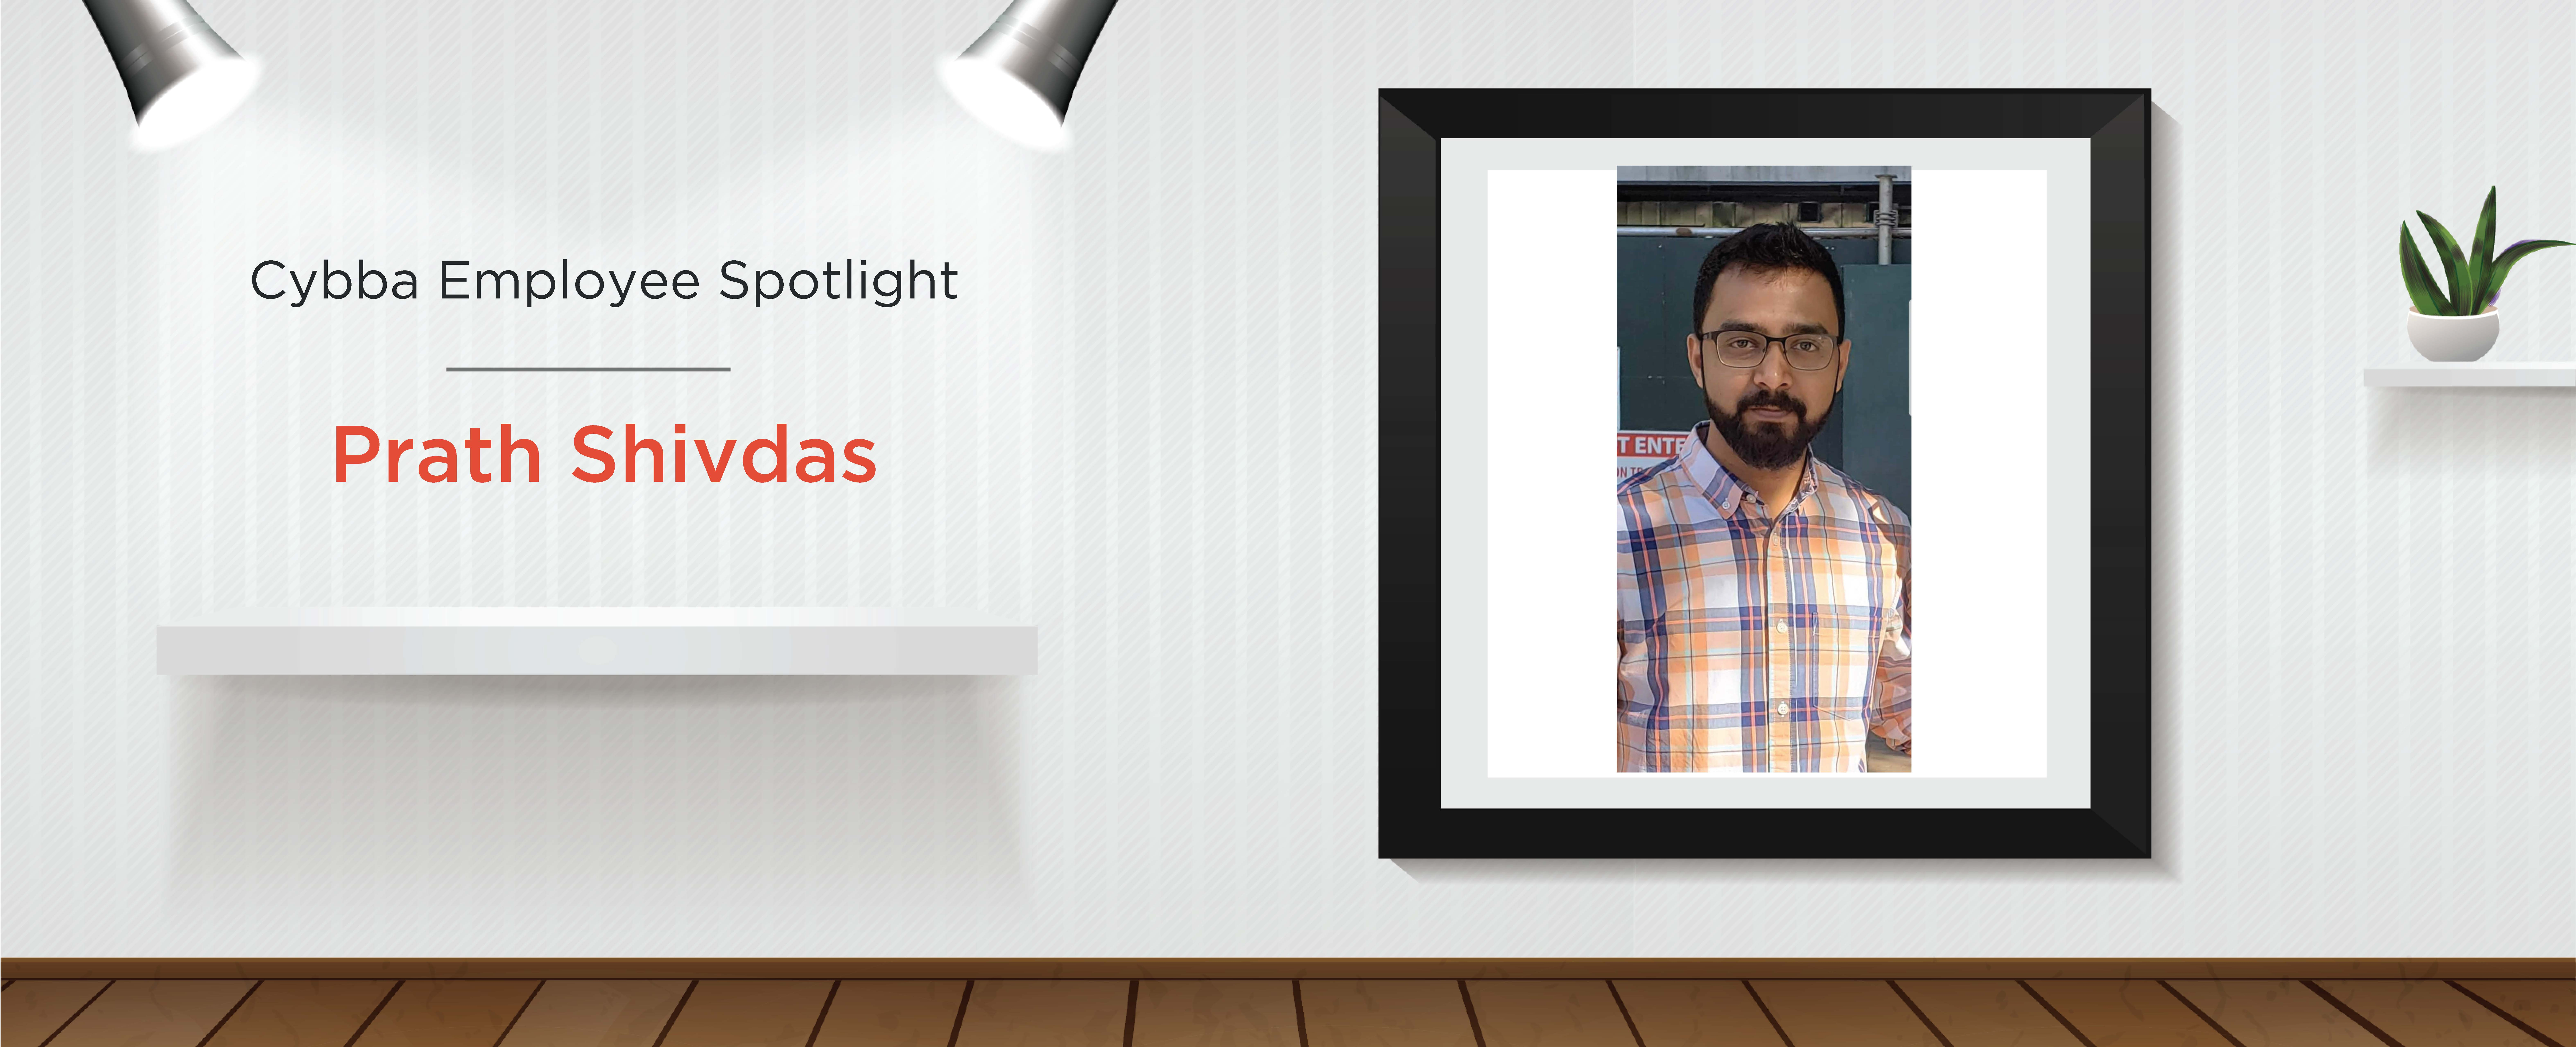 EmployeeSpotlight_flattened-Prath